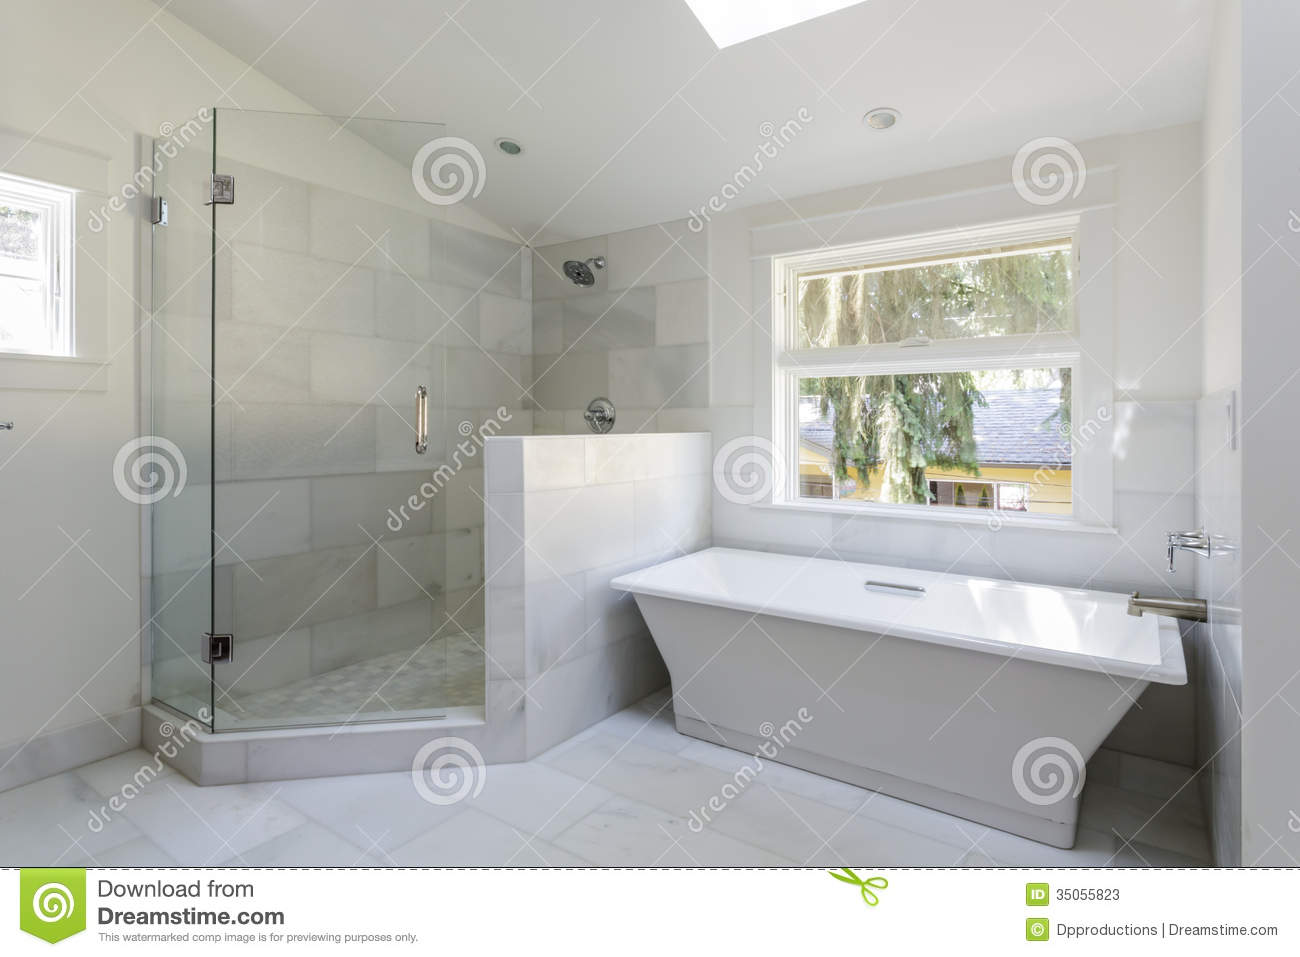 Cuarto De Baño Moderno Fotos:Modern Bathroom with Shower